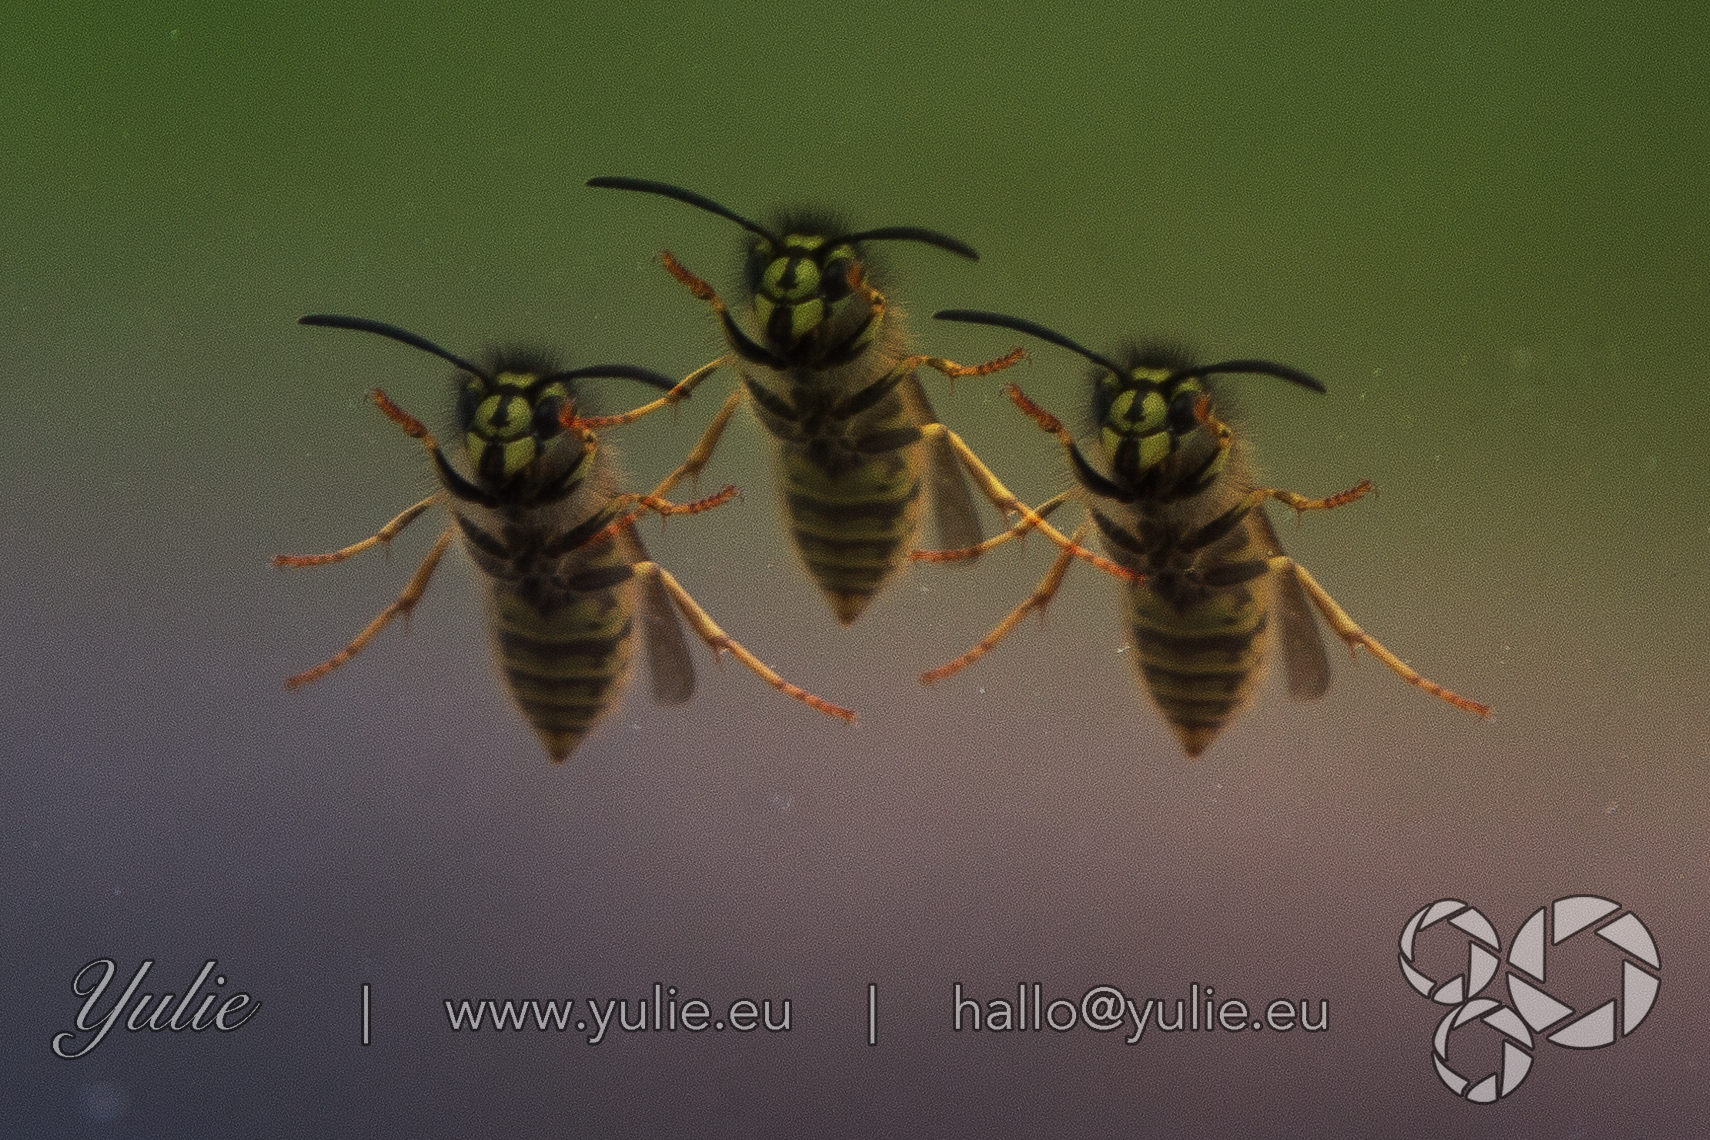 dancing Wasps2